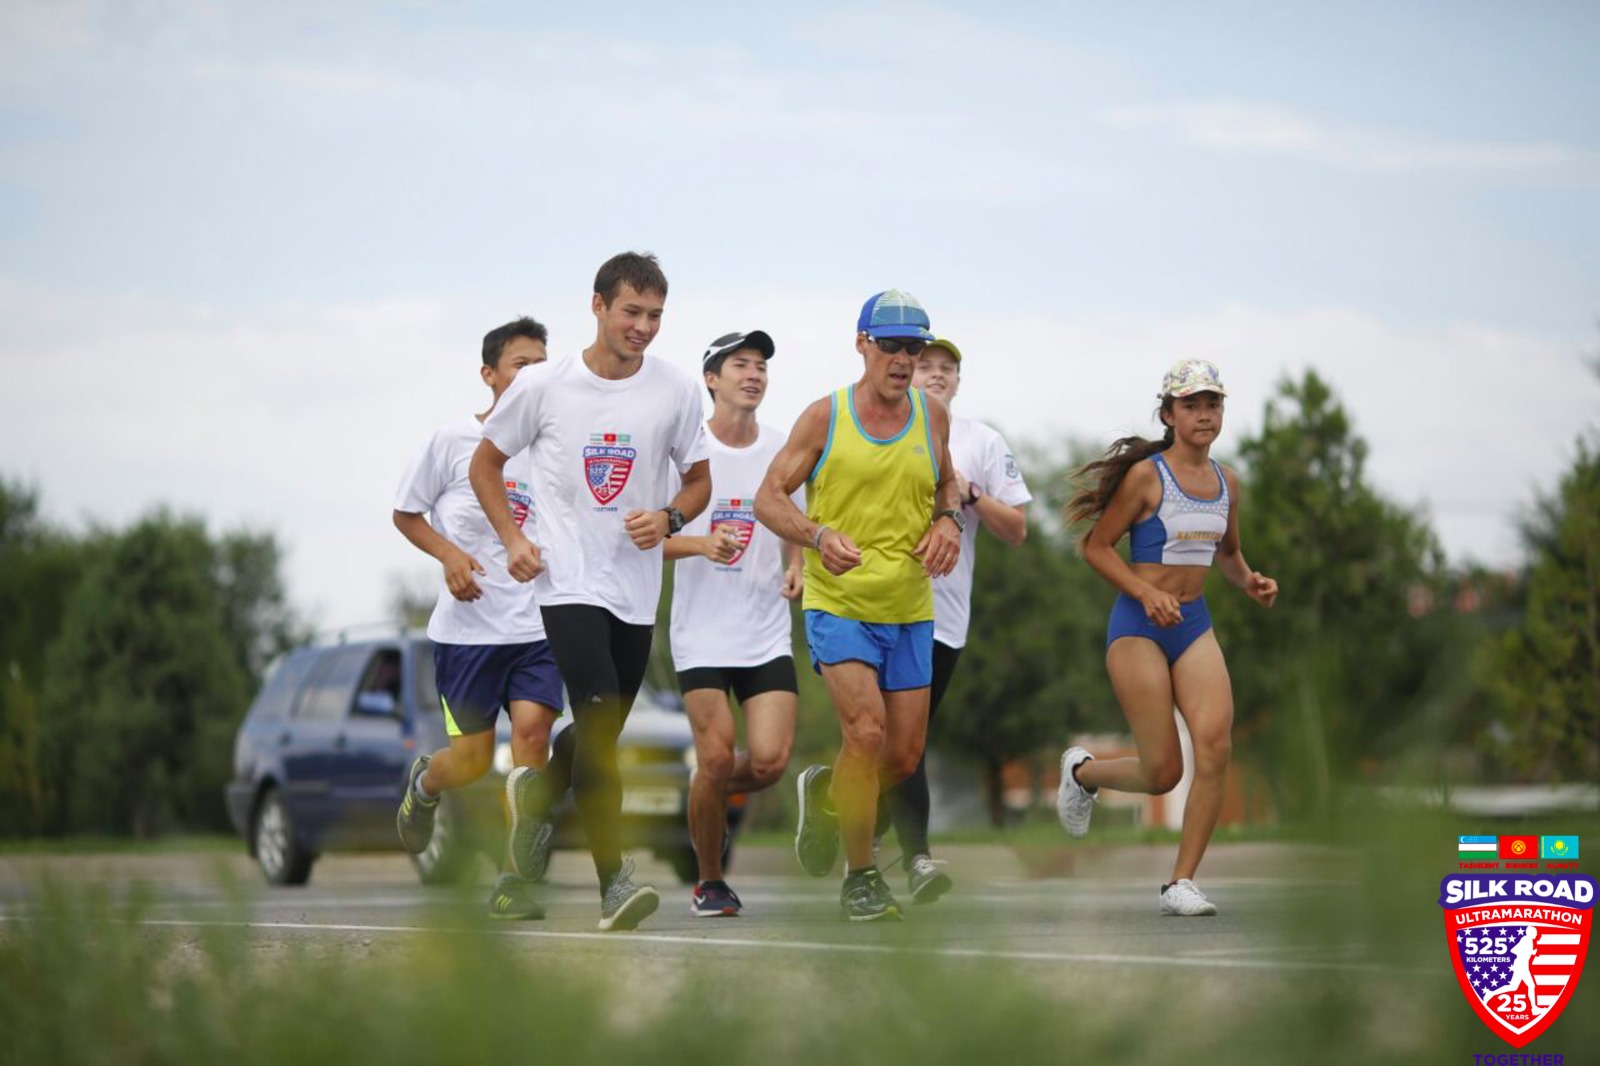 Dean and group running